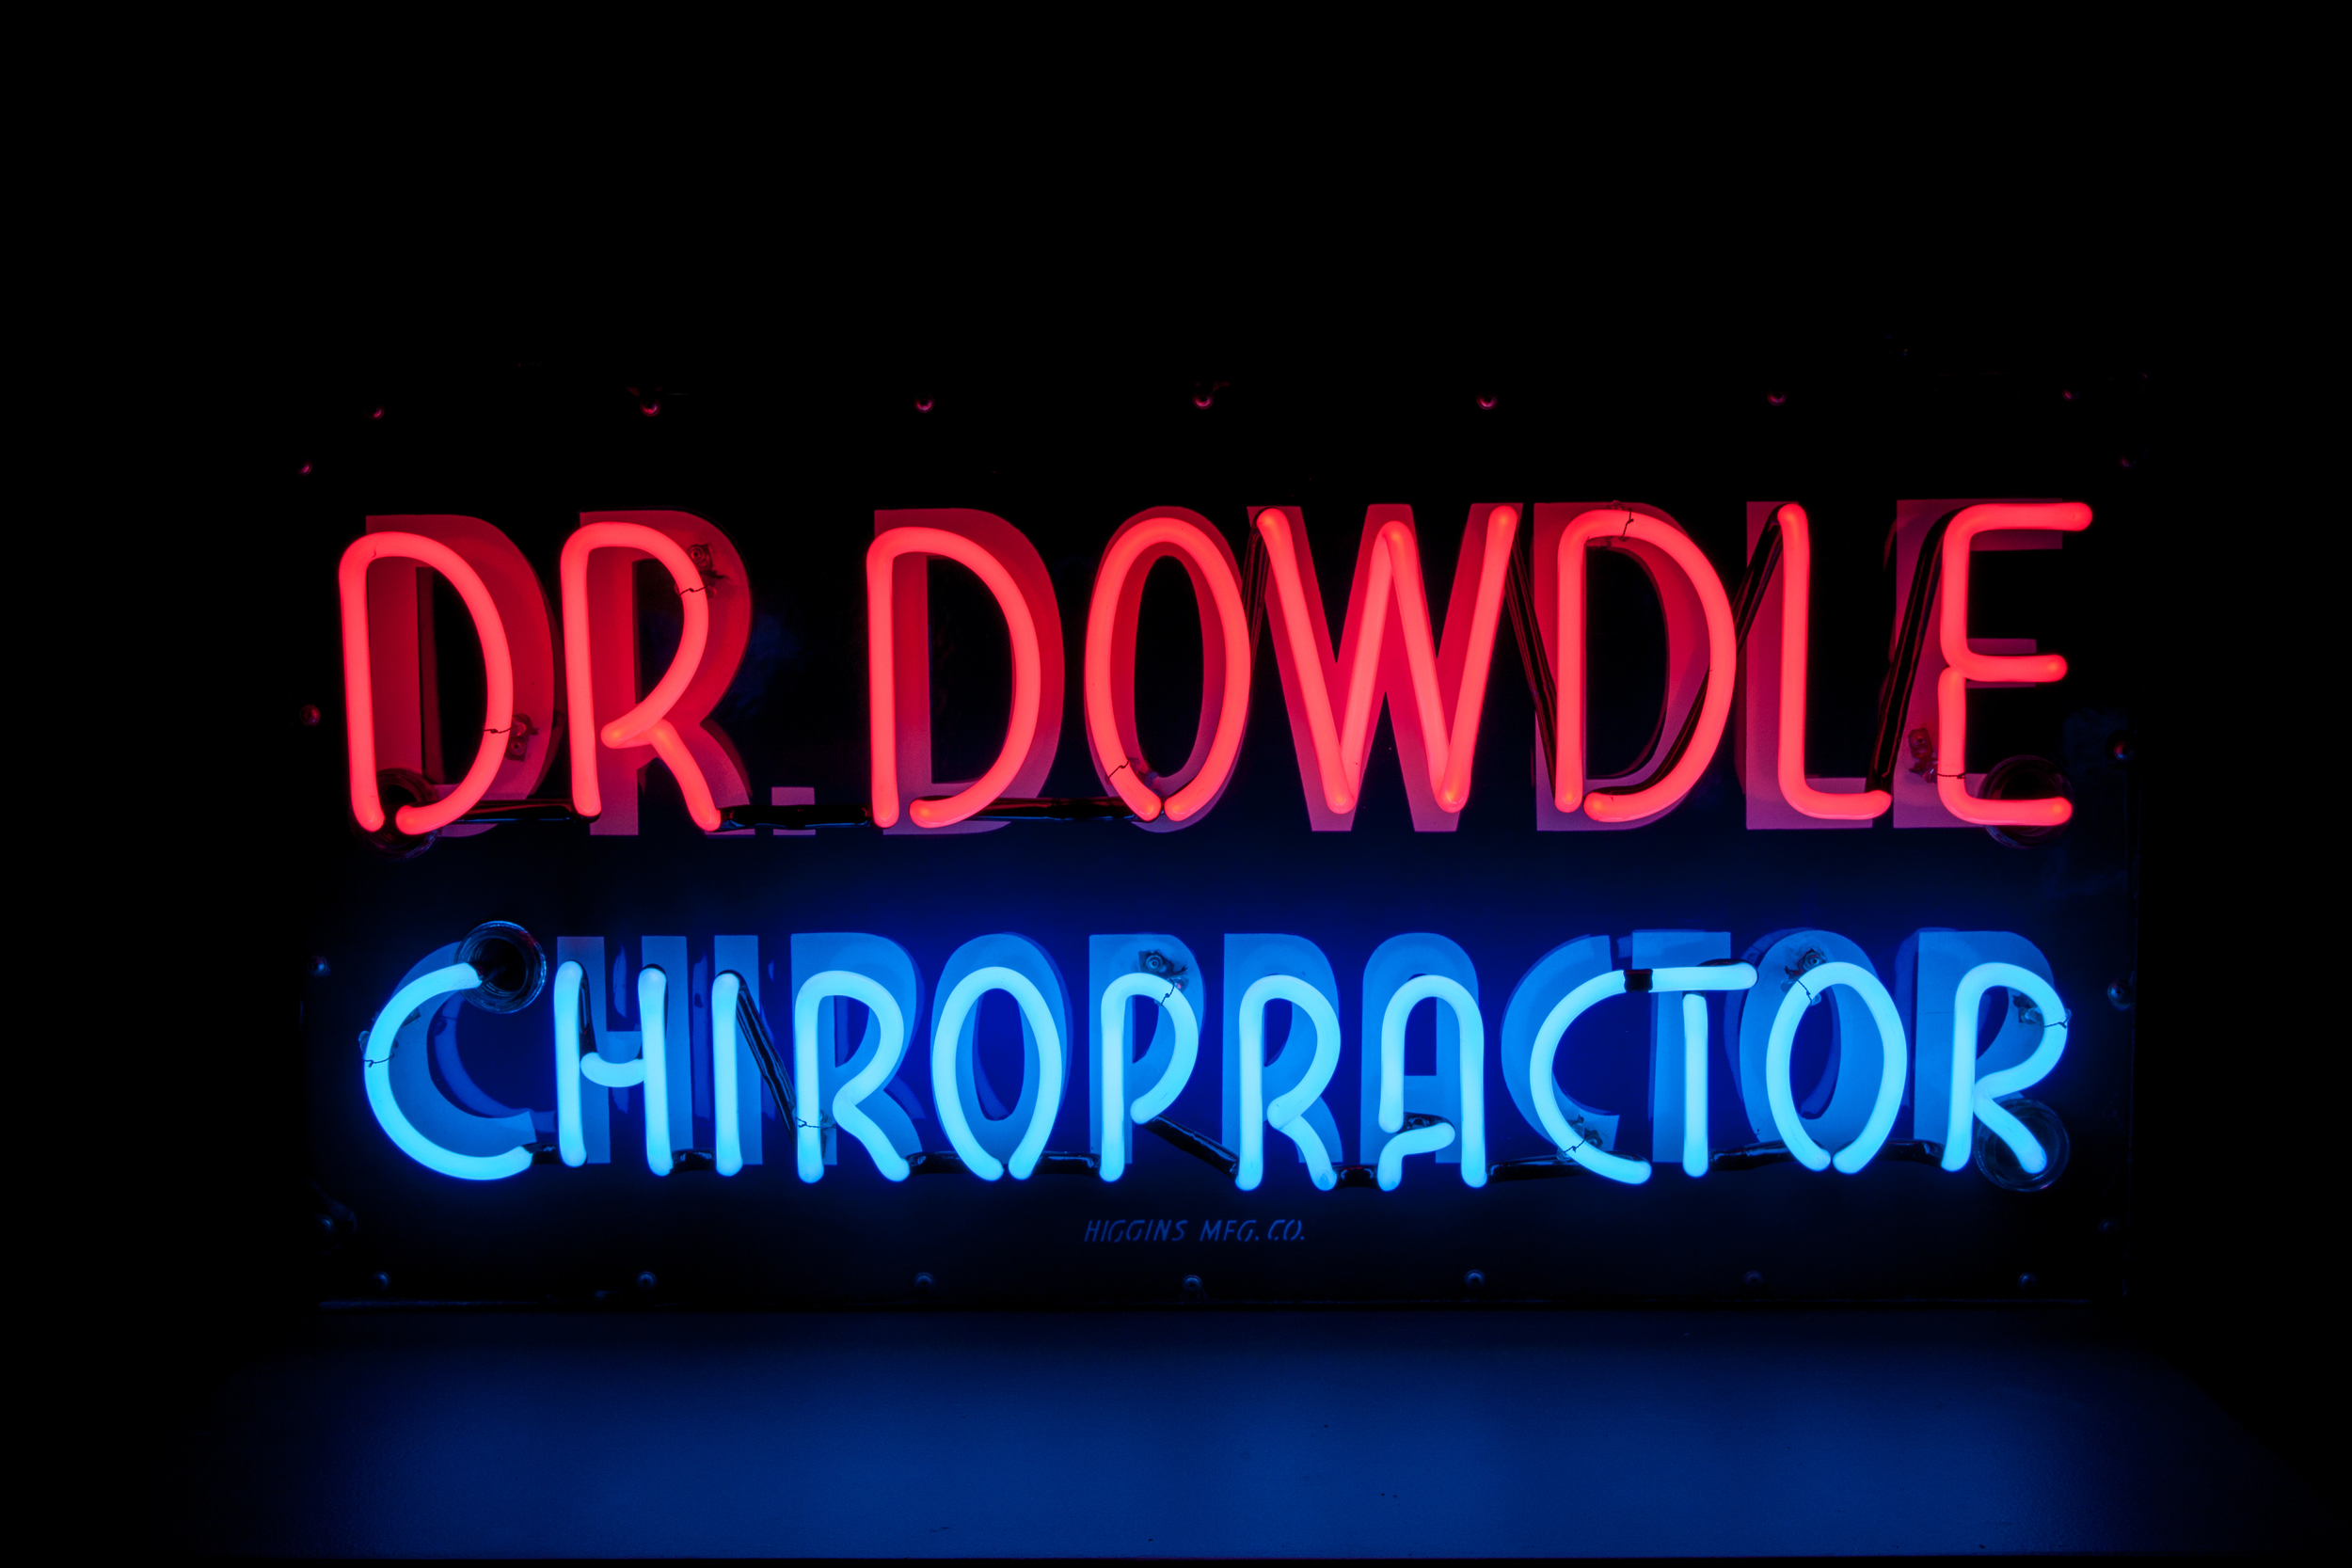 Dr. Dowdle Chiropractic Neon Sign